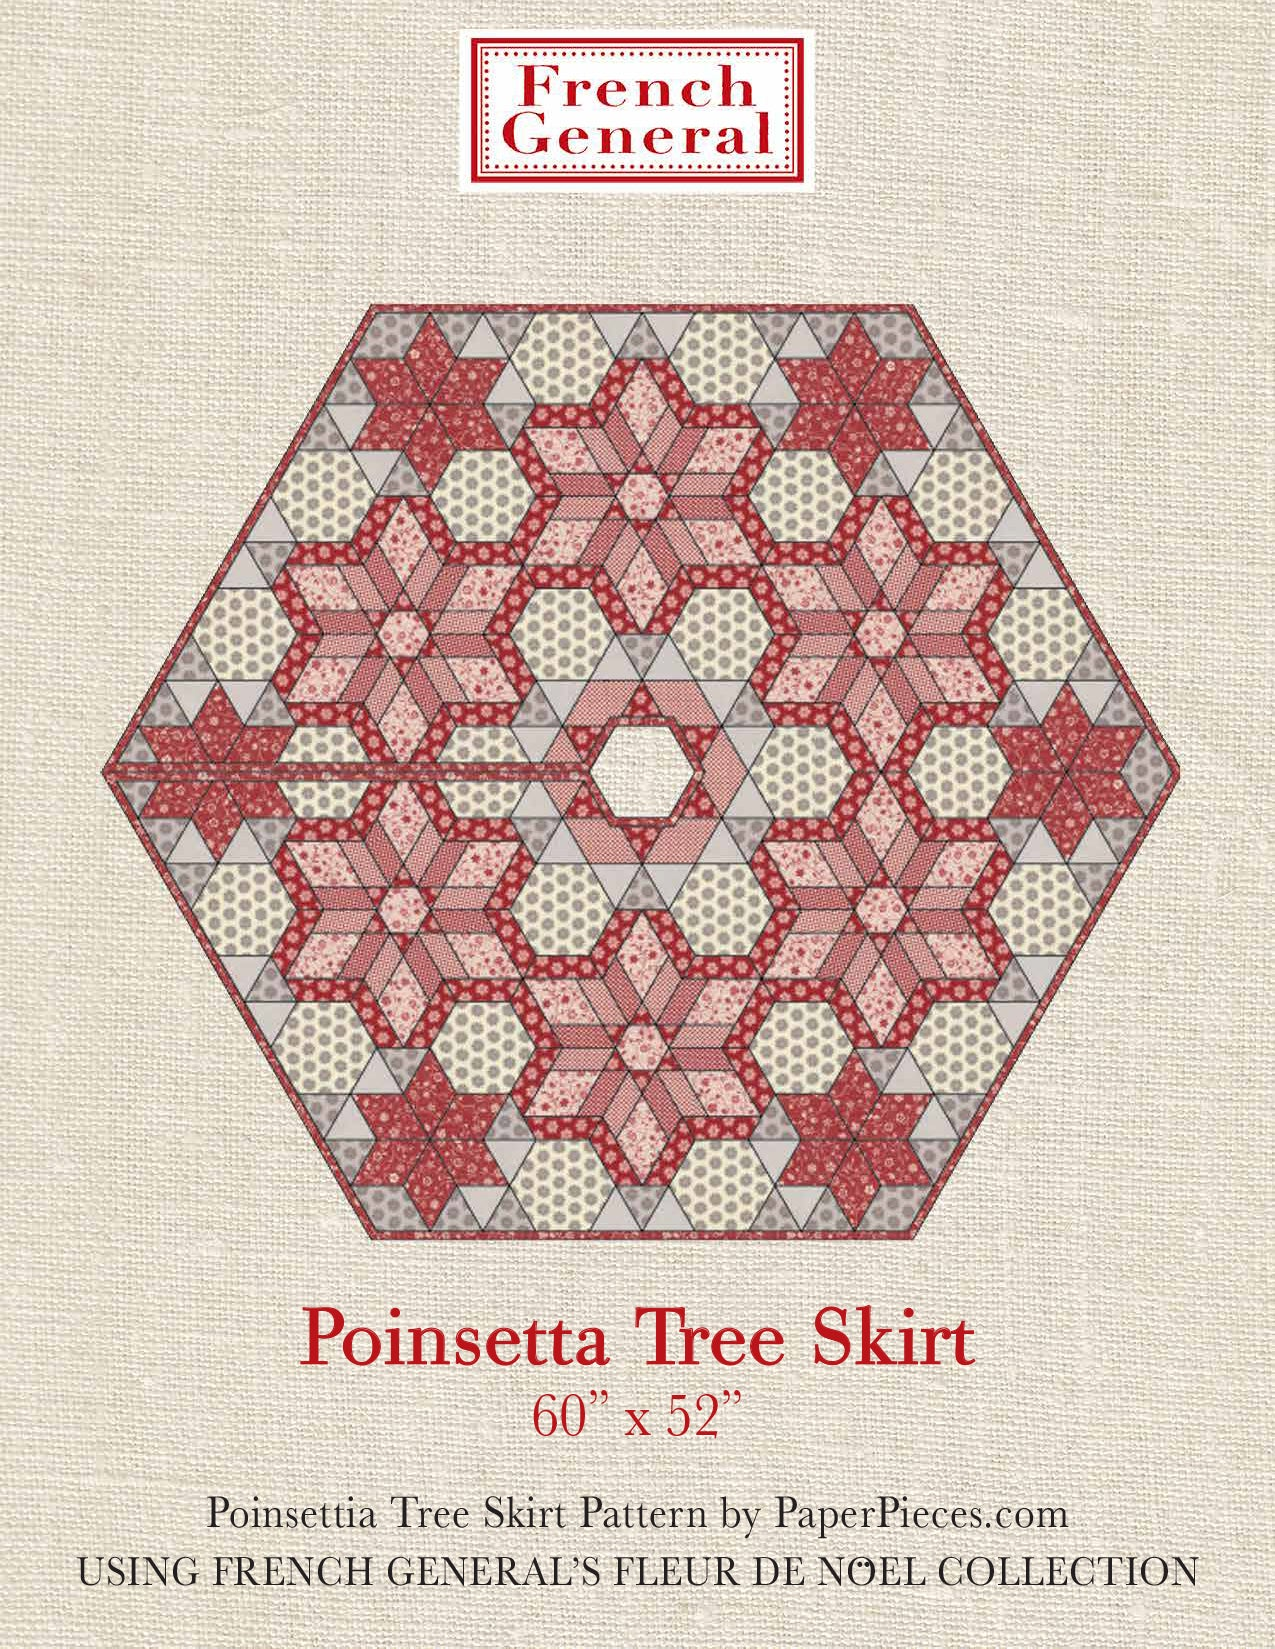 Moda French General - Poinsettia Tree Skirt Pattern